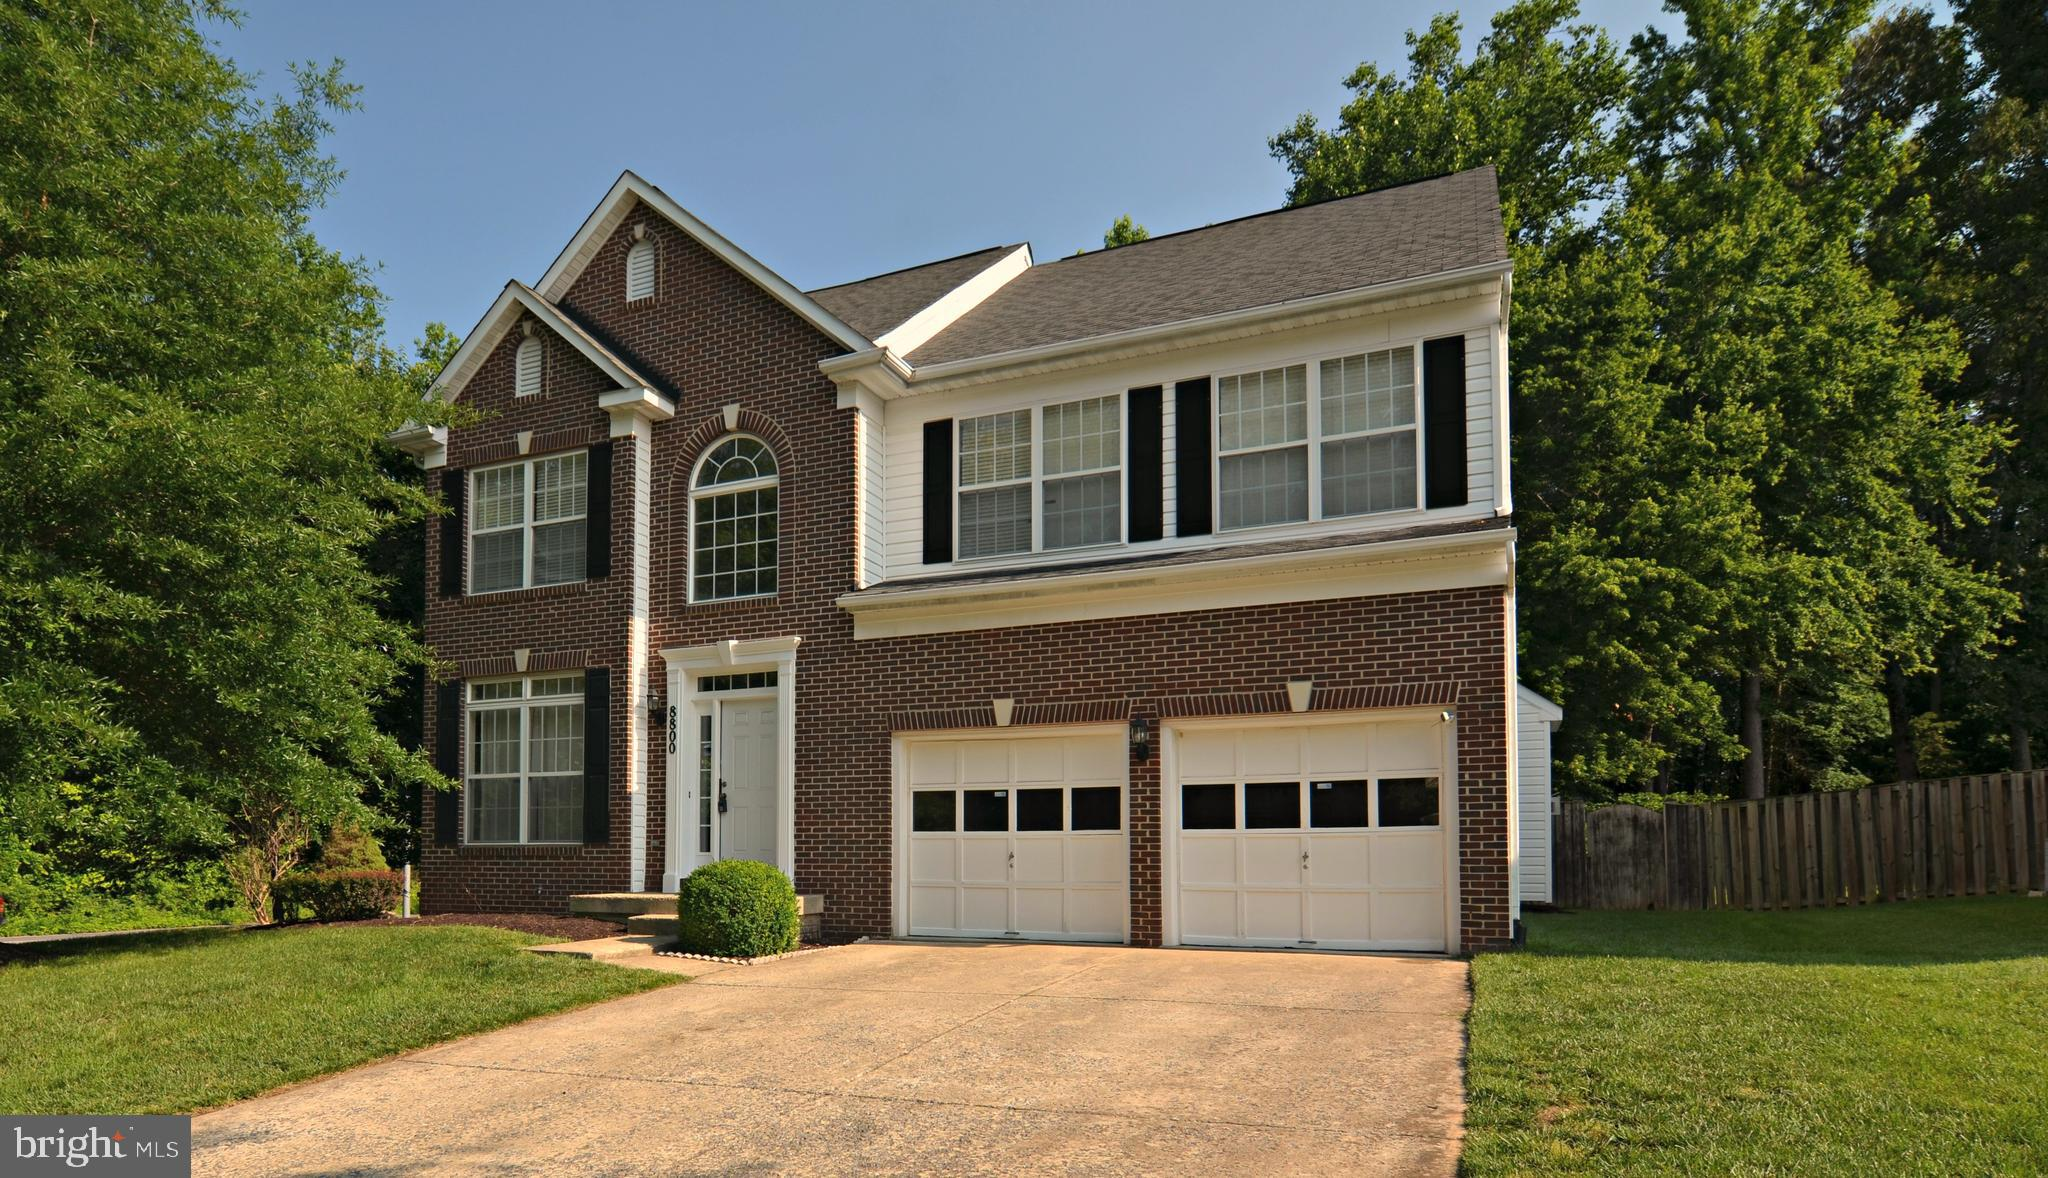 8800 SUMNER GROVE DRIVE, LAUREL, MD 20708